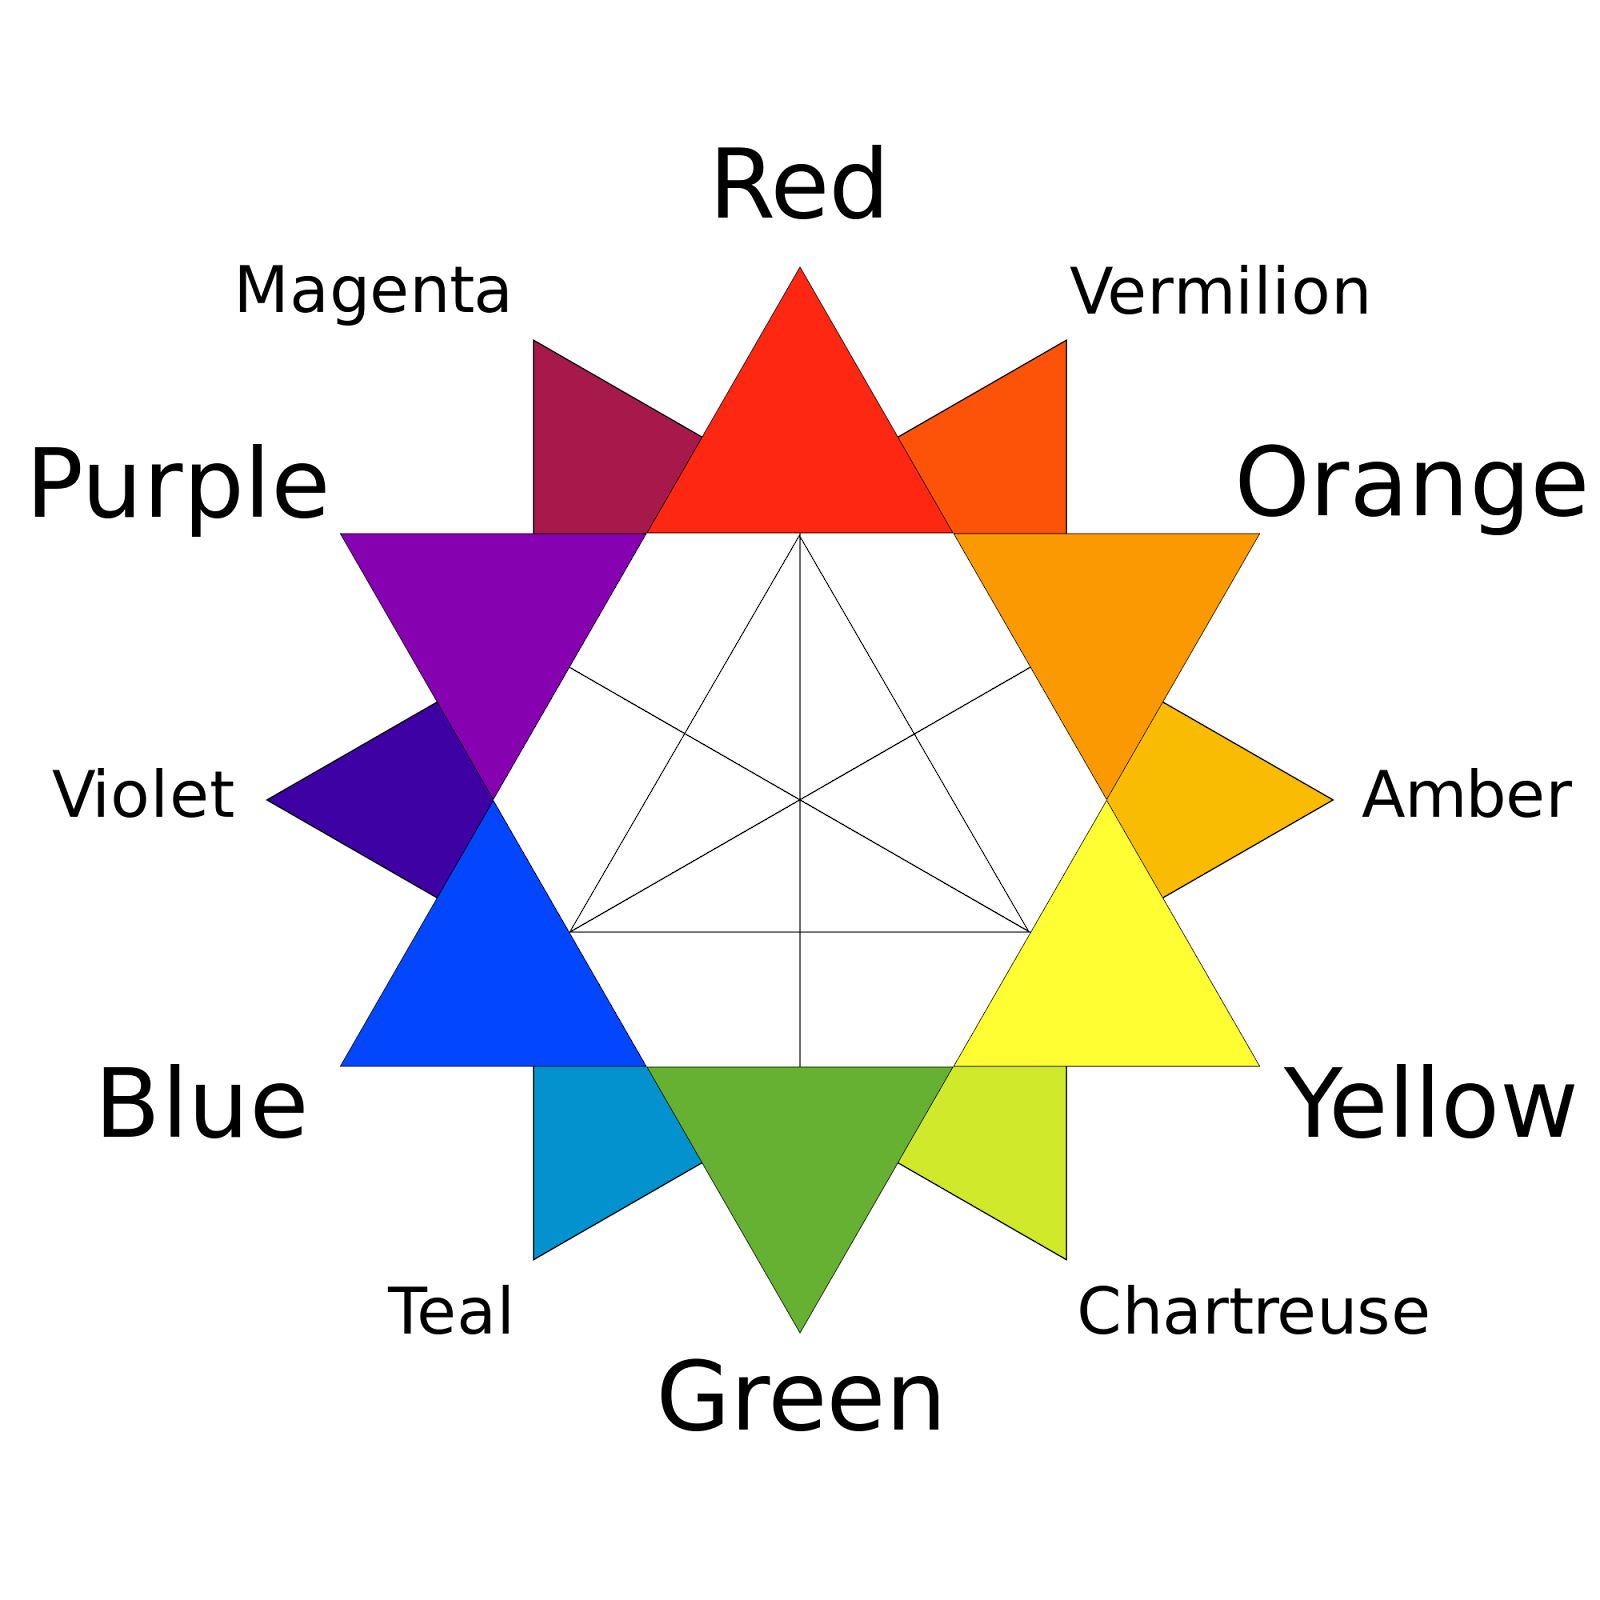 A star of the colors of the rainbow. In between each point is a diamond shape of the color of combine rainbow colors on each side.